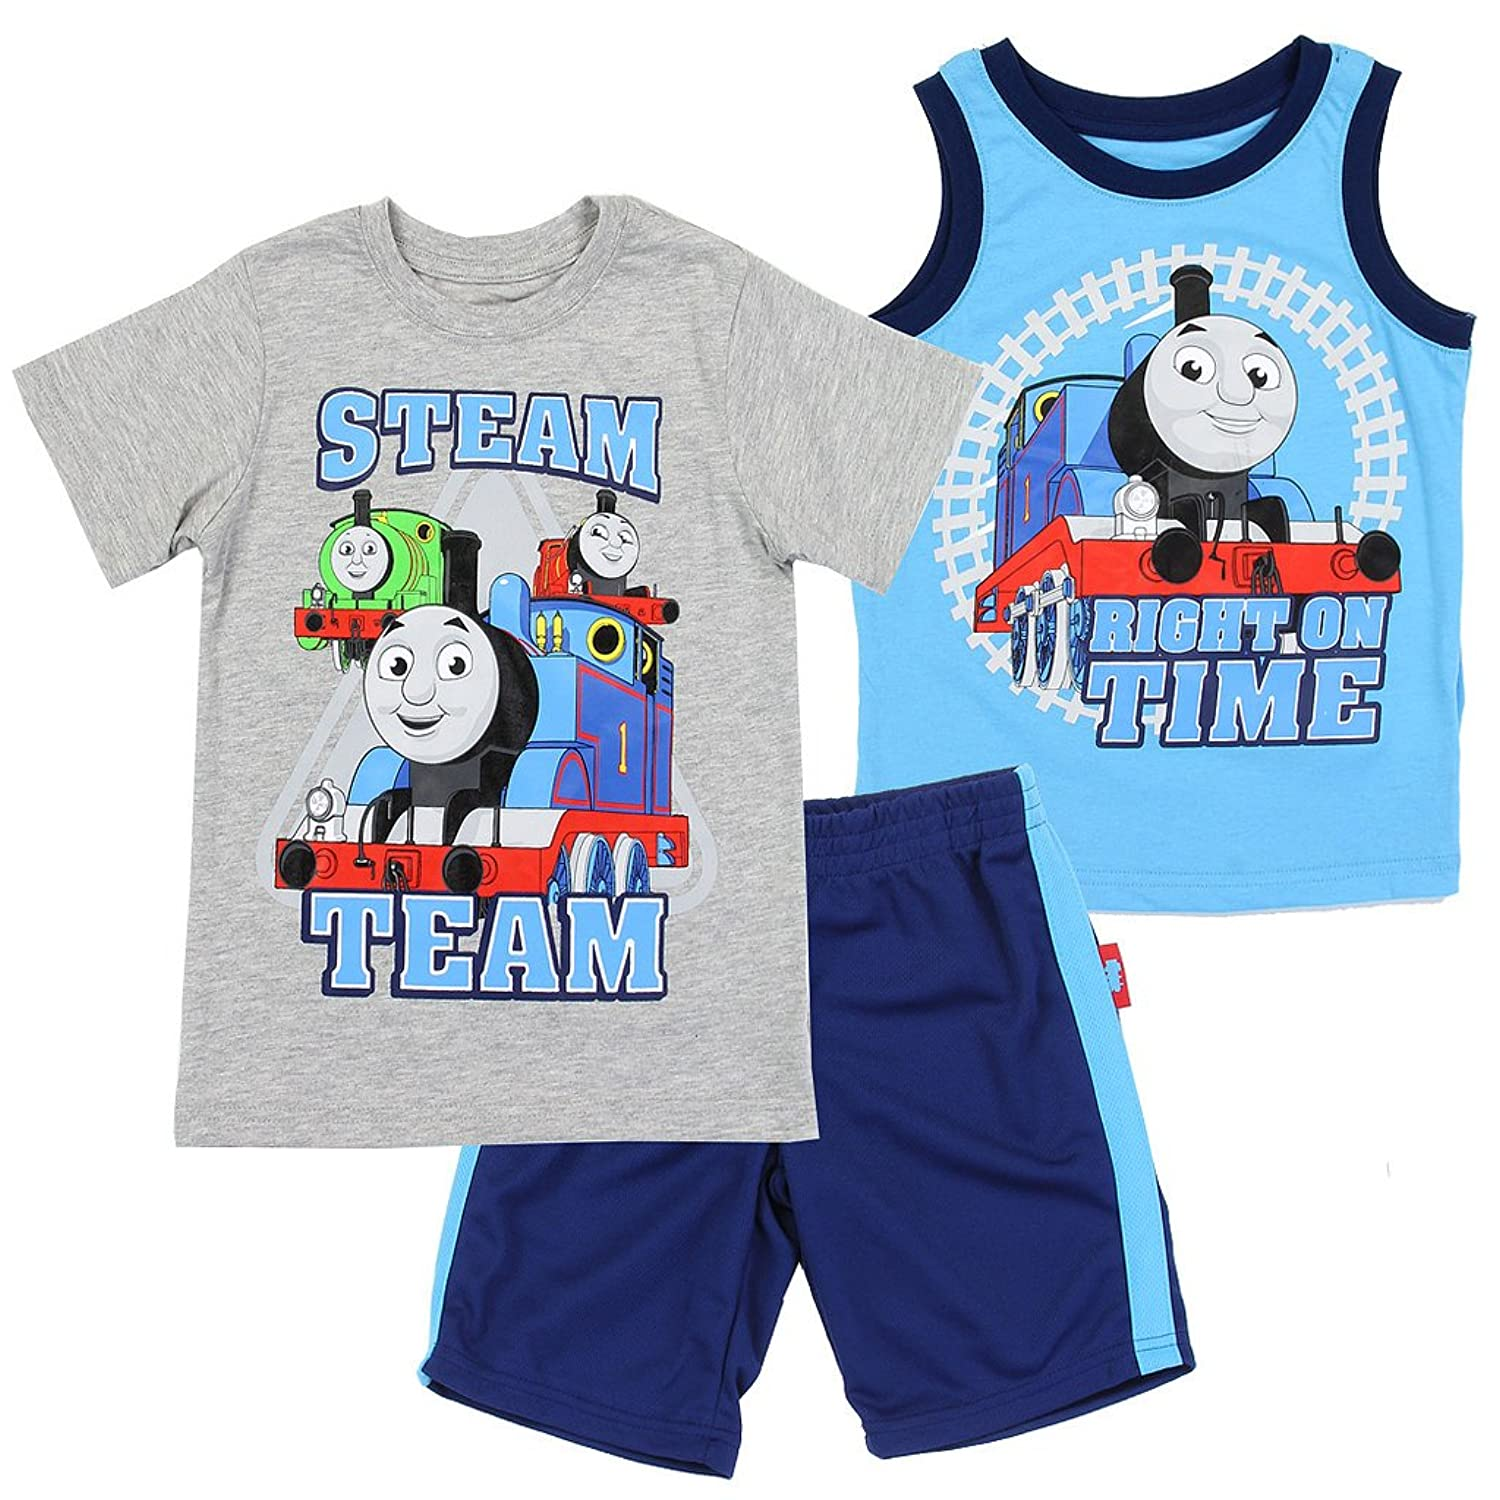 Thomas the Tank and Friends SHORTS ボーイズ